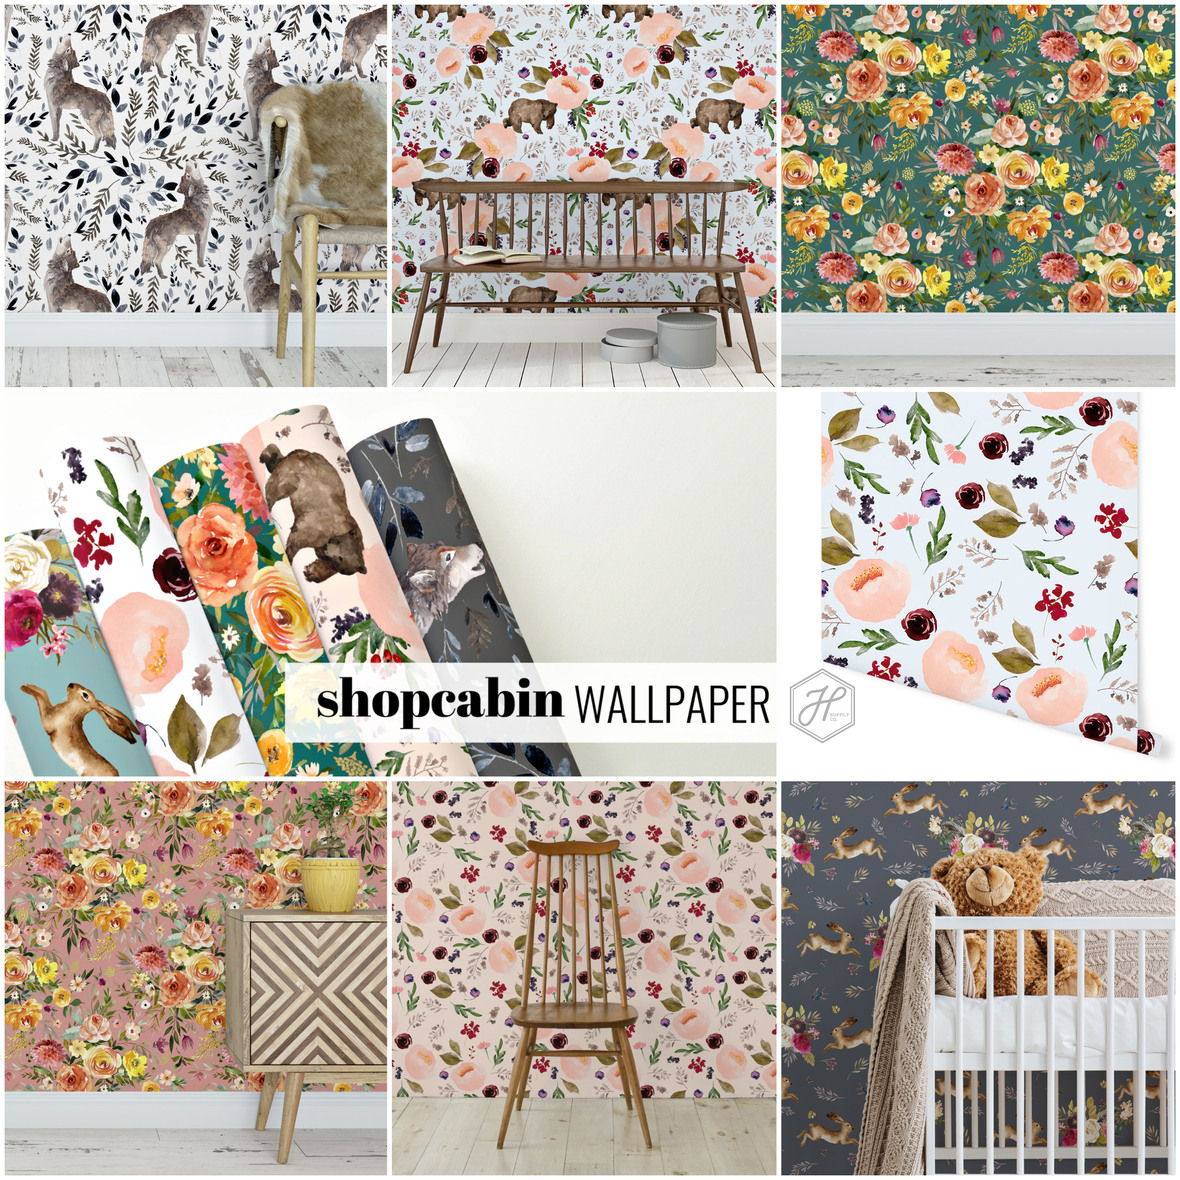 Shopcabin Wallpaper at Hawthorne Supply Co